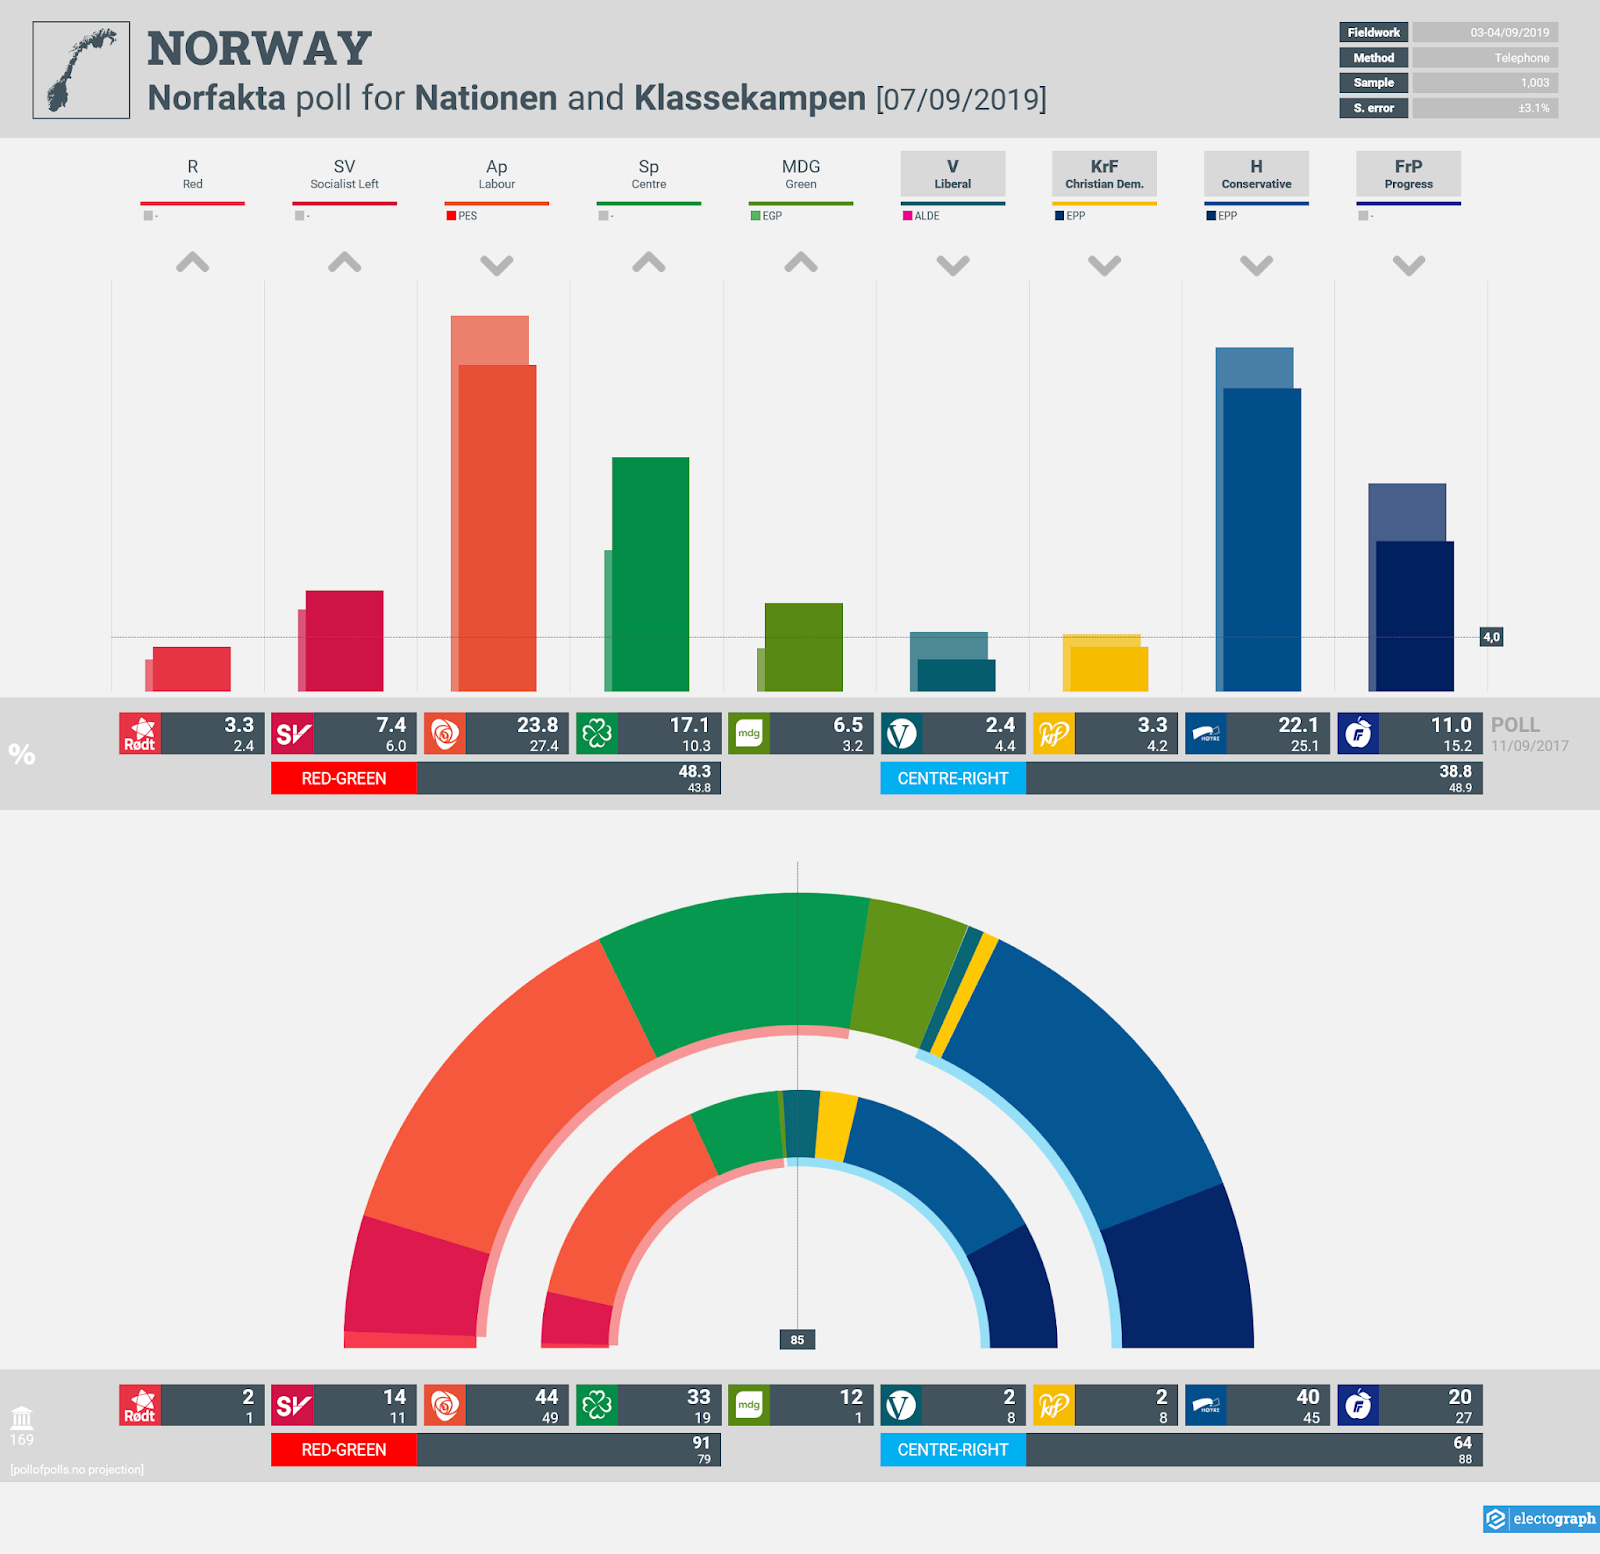 NORWAY: Norfakta poll chart for Nationen and Klassekampen, 7 September 2019